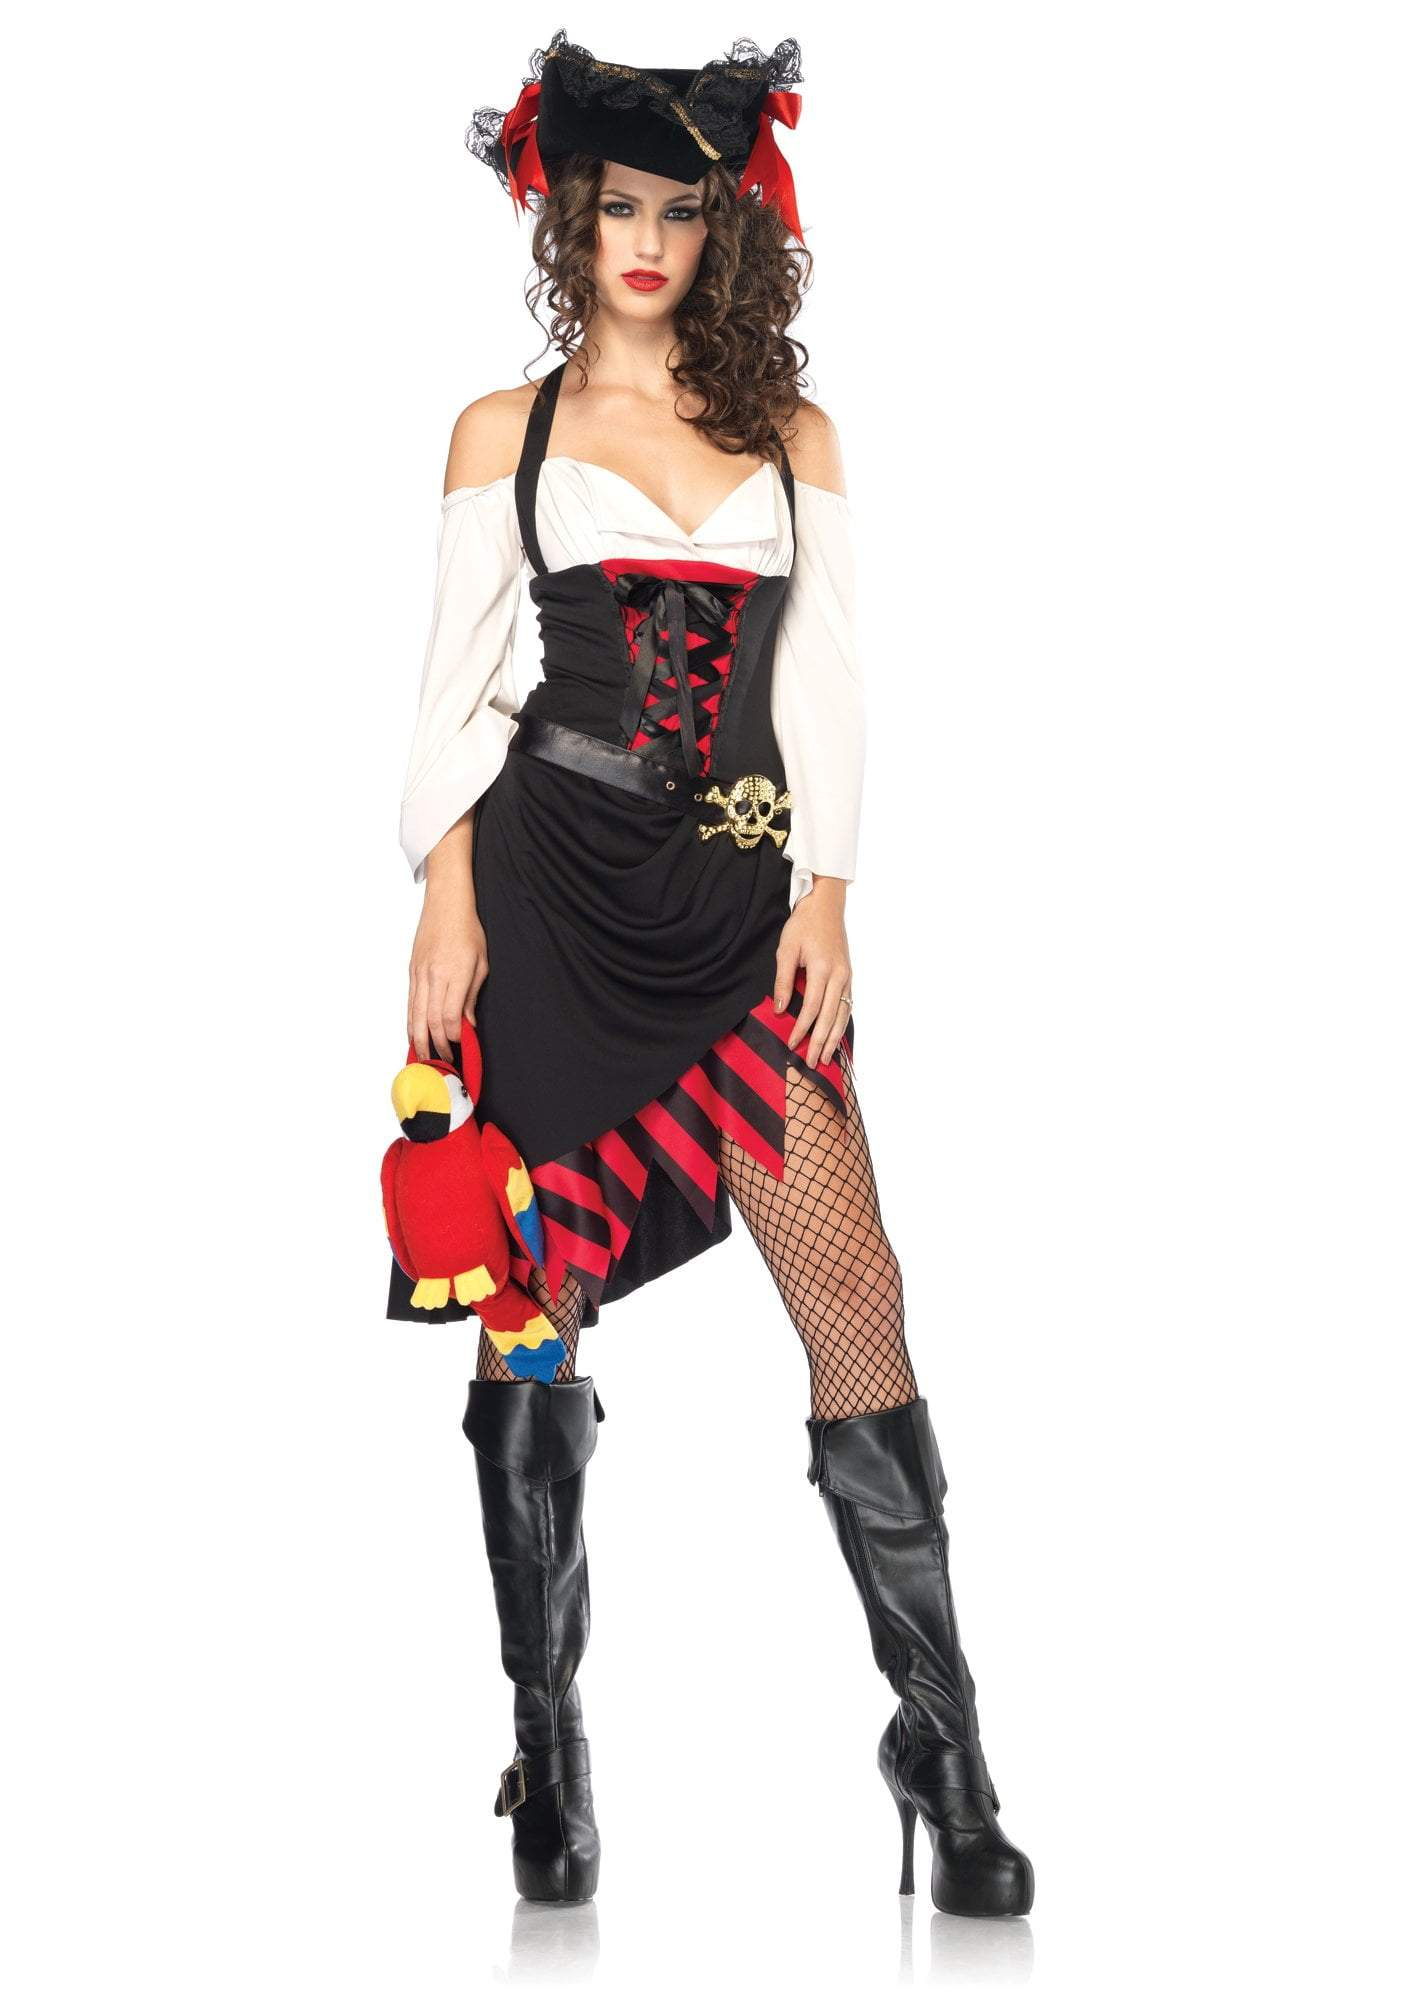 Leg Avenue Costumes BLACK/RED / MED/LGE Adult Saucy Wench Pirate Costume